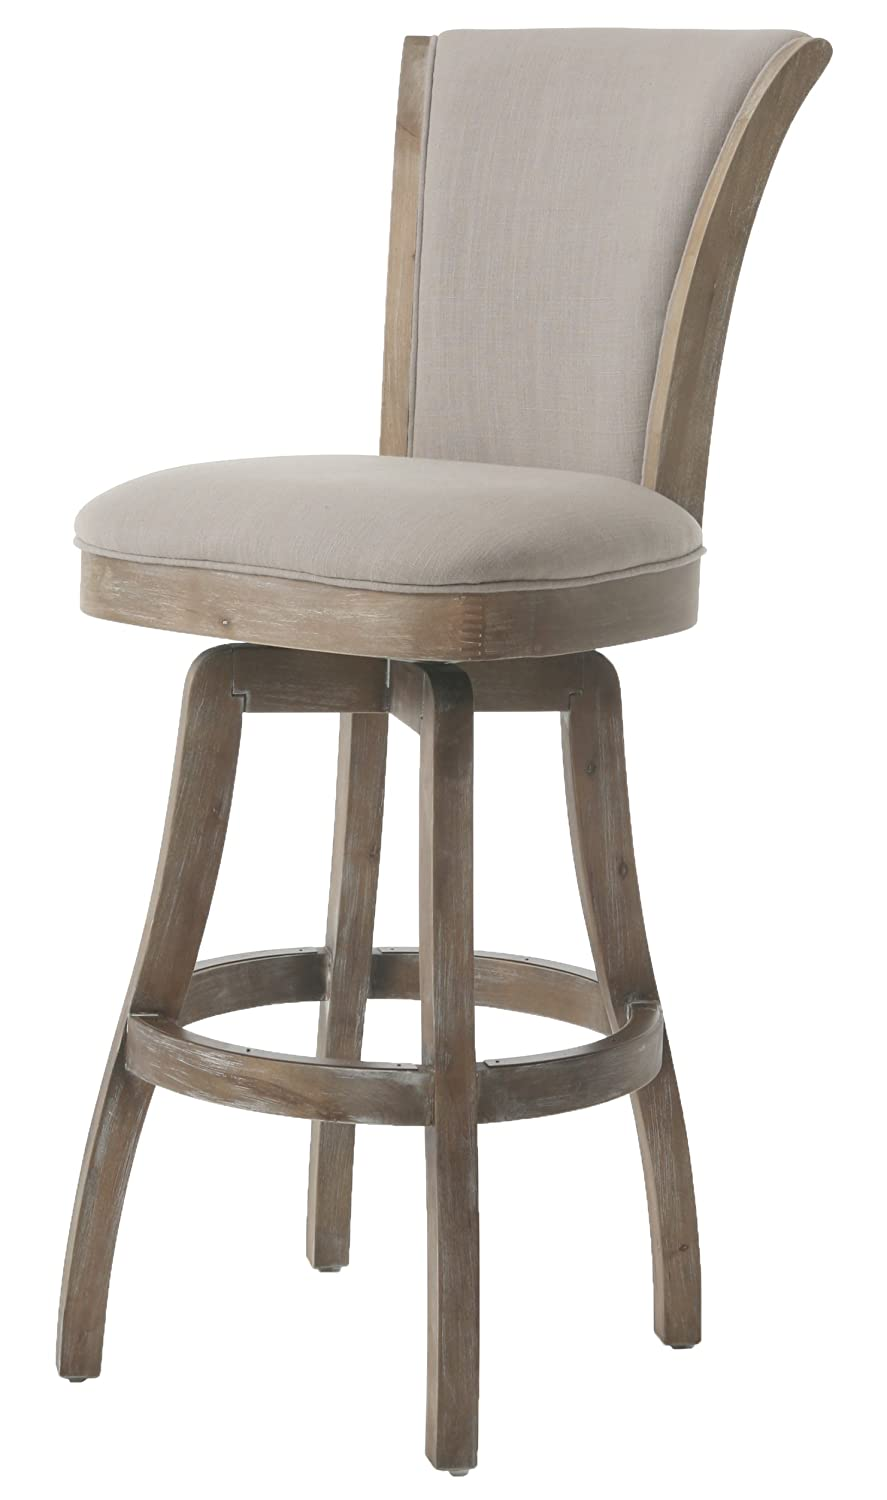 Awesome Impacterra Qlgl219374091 Glenwood Swivel Stool 26 Counter Caraccident5 Cool Chair Designs And Ideas Caraccident5Info